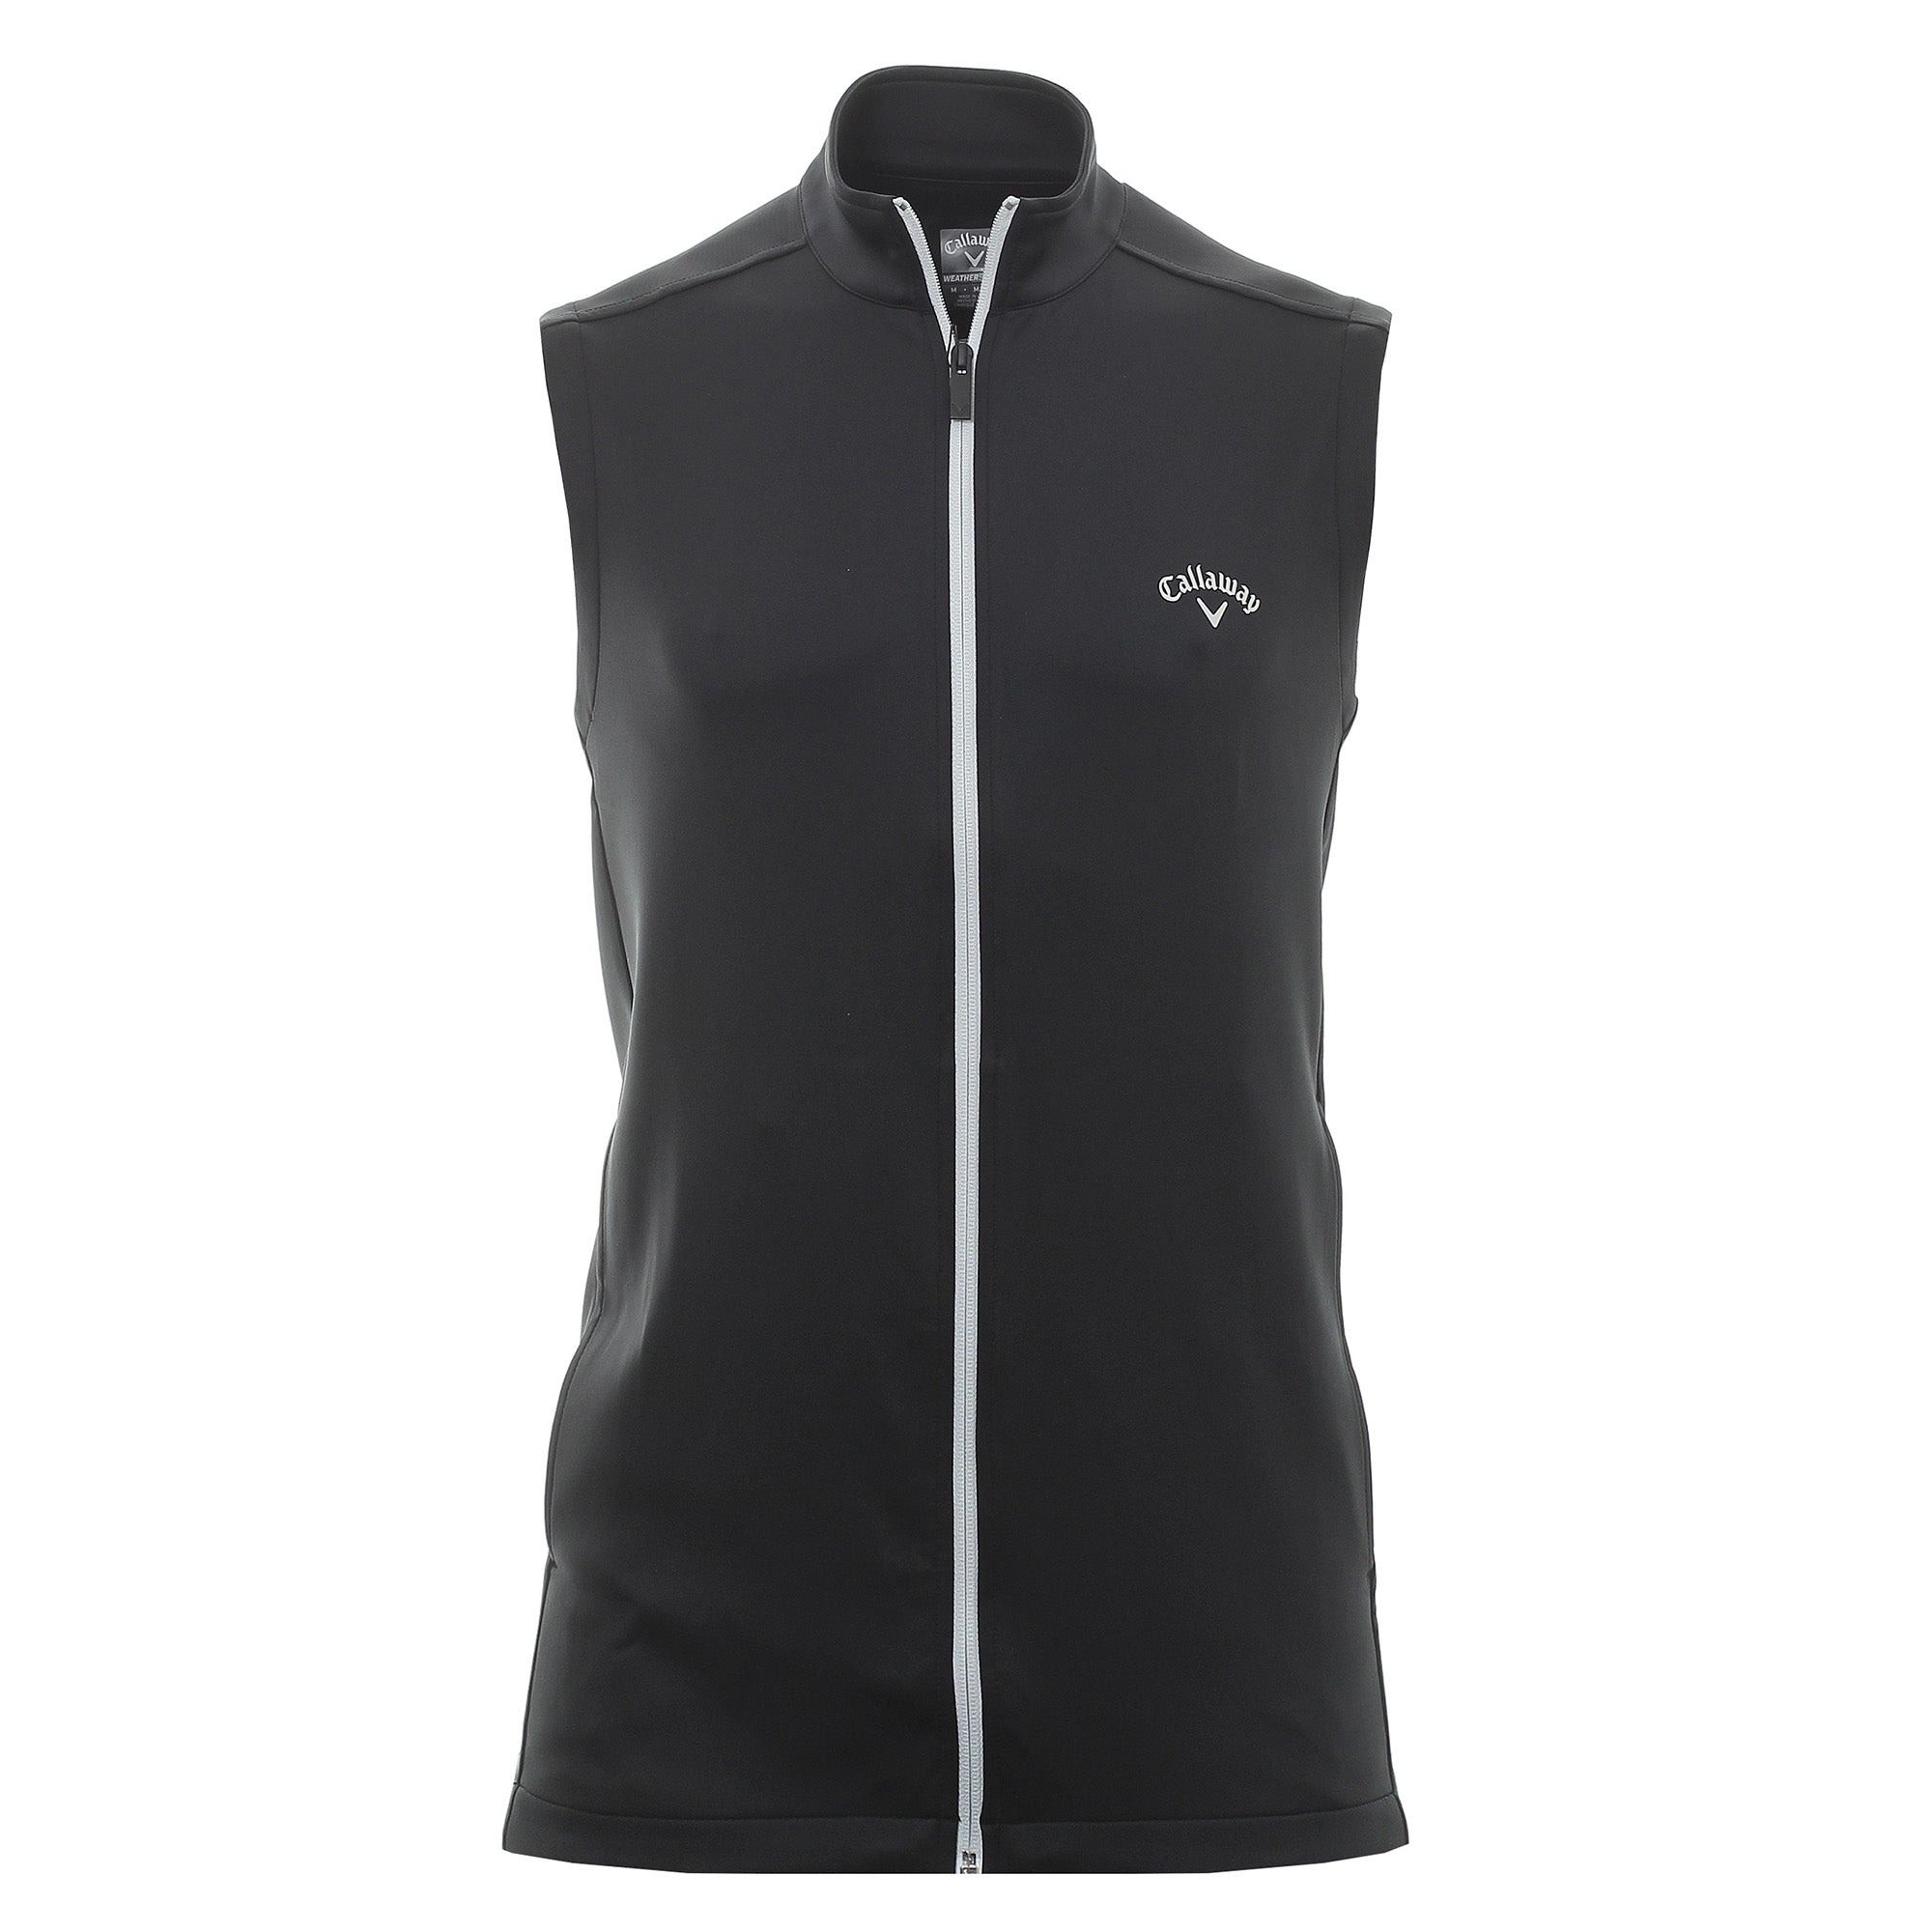 Callaway Golf Full Zip Fleece Vest CGKS90J7